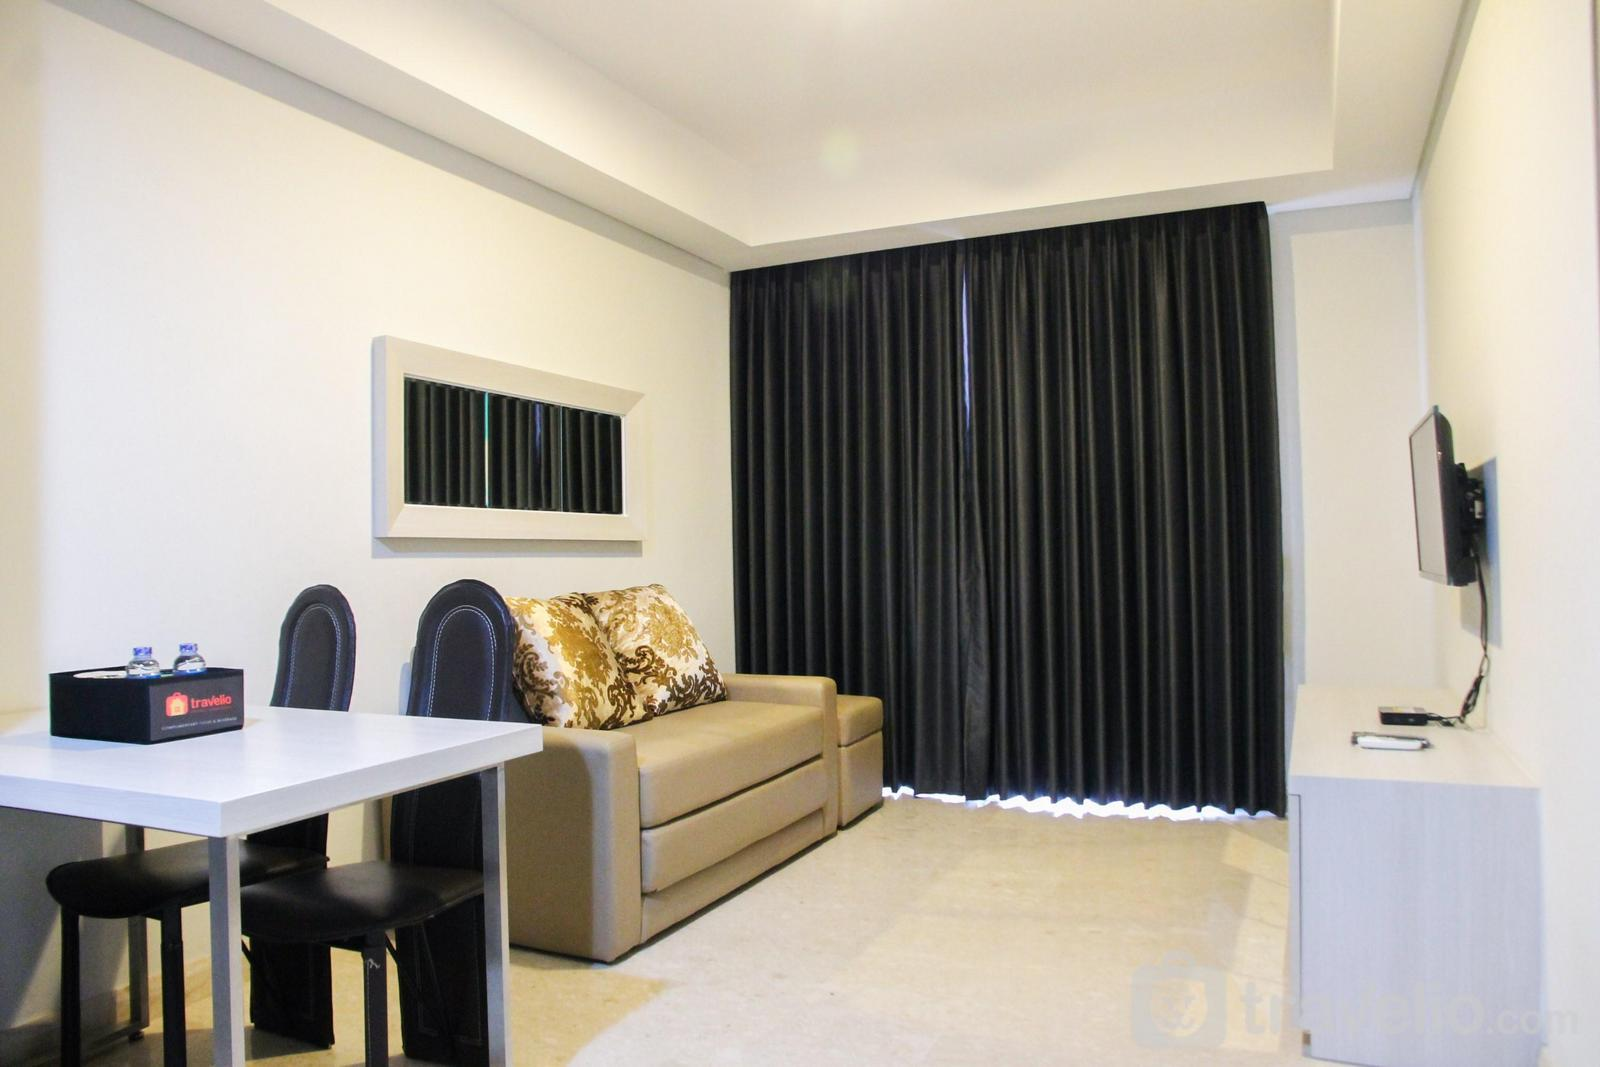 Gold Coast Apartment - Sea View 1BR at Gold Coast Apartment near PIK By Travelio